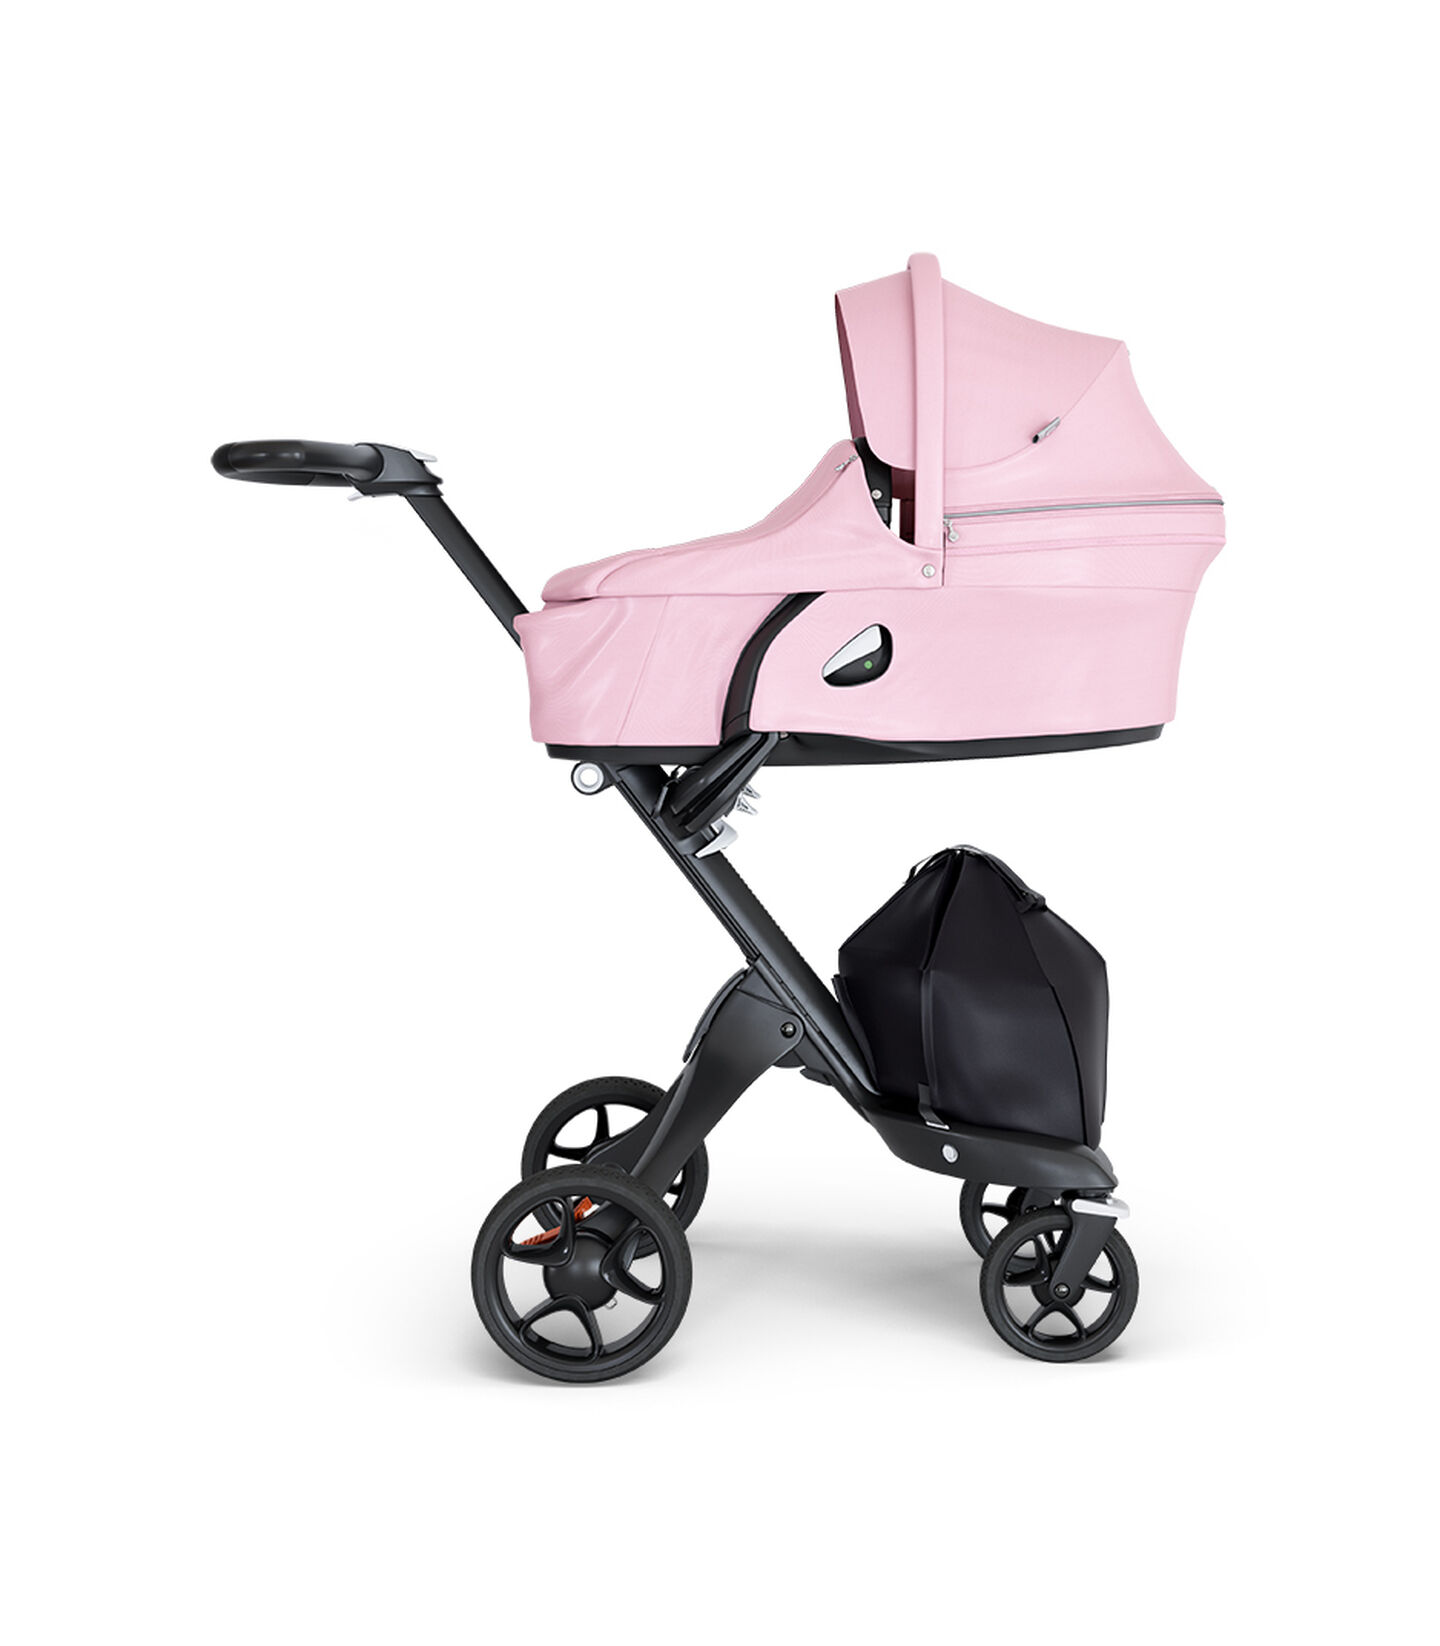 Stokke® Xplory® wtih Black Chassis and Leatherette Black handle. Stokke® Stroller Carry Cot Lotus Pink.